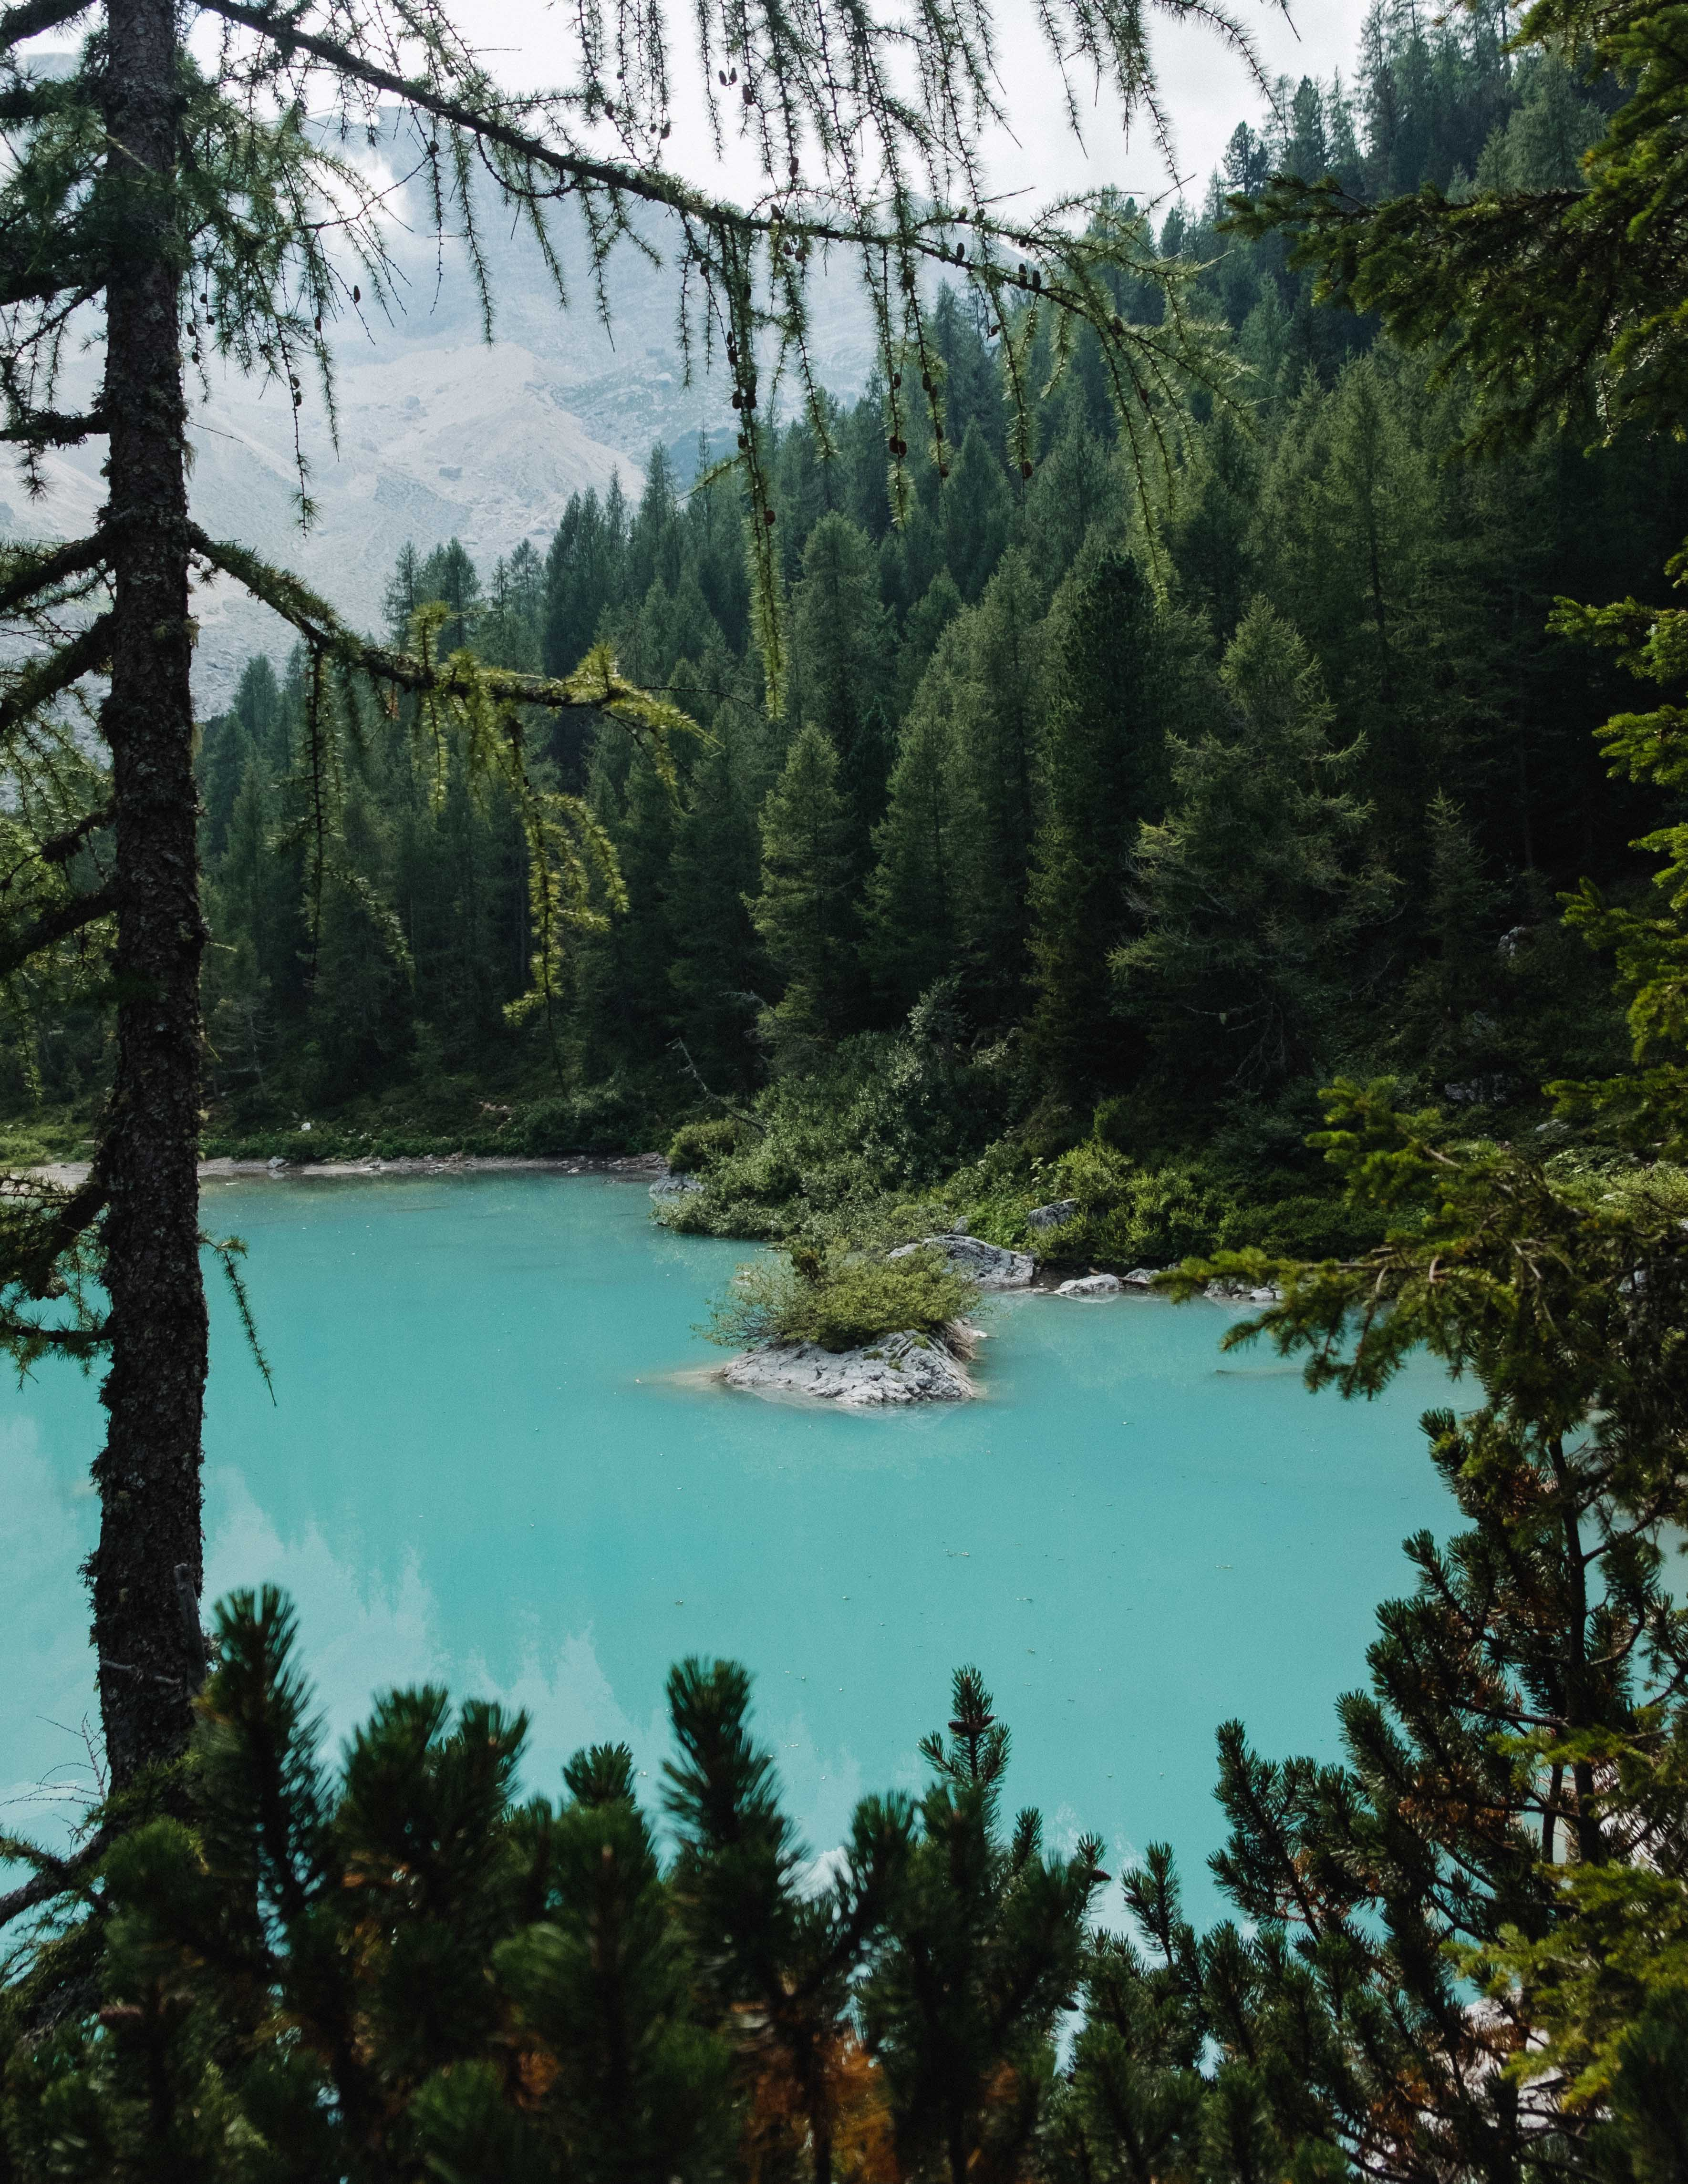 146205 download wallpaper Nature, Trees, Lake, Shore, Bank, Coniferous, Forest screensavers and pictures for free